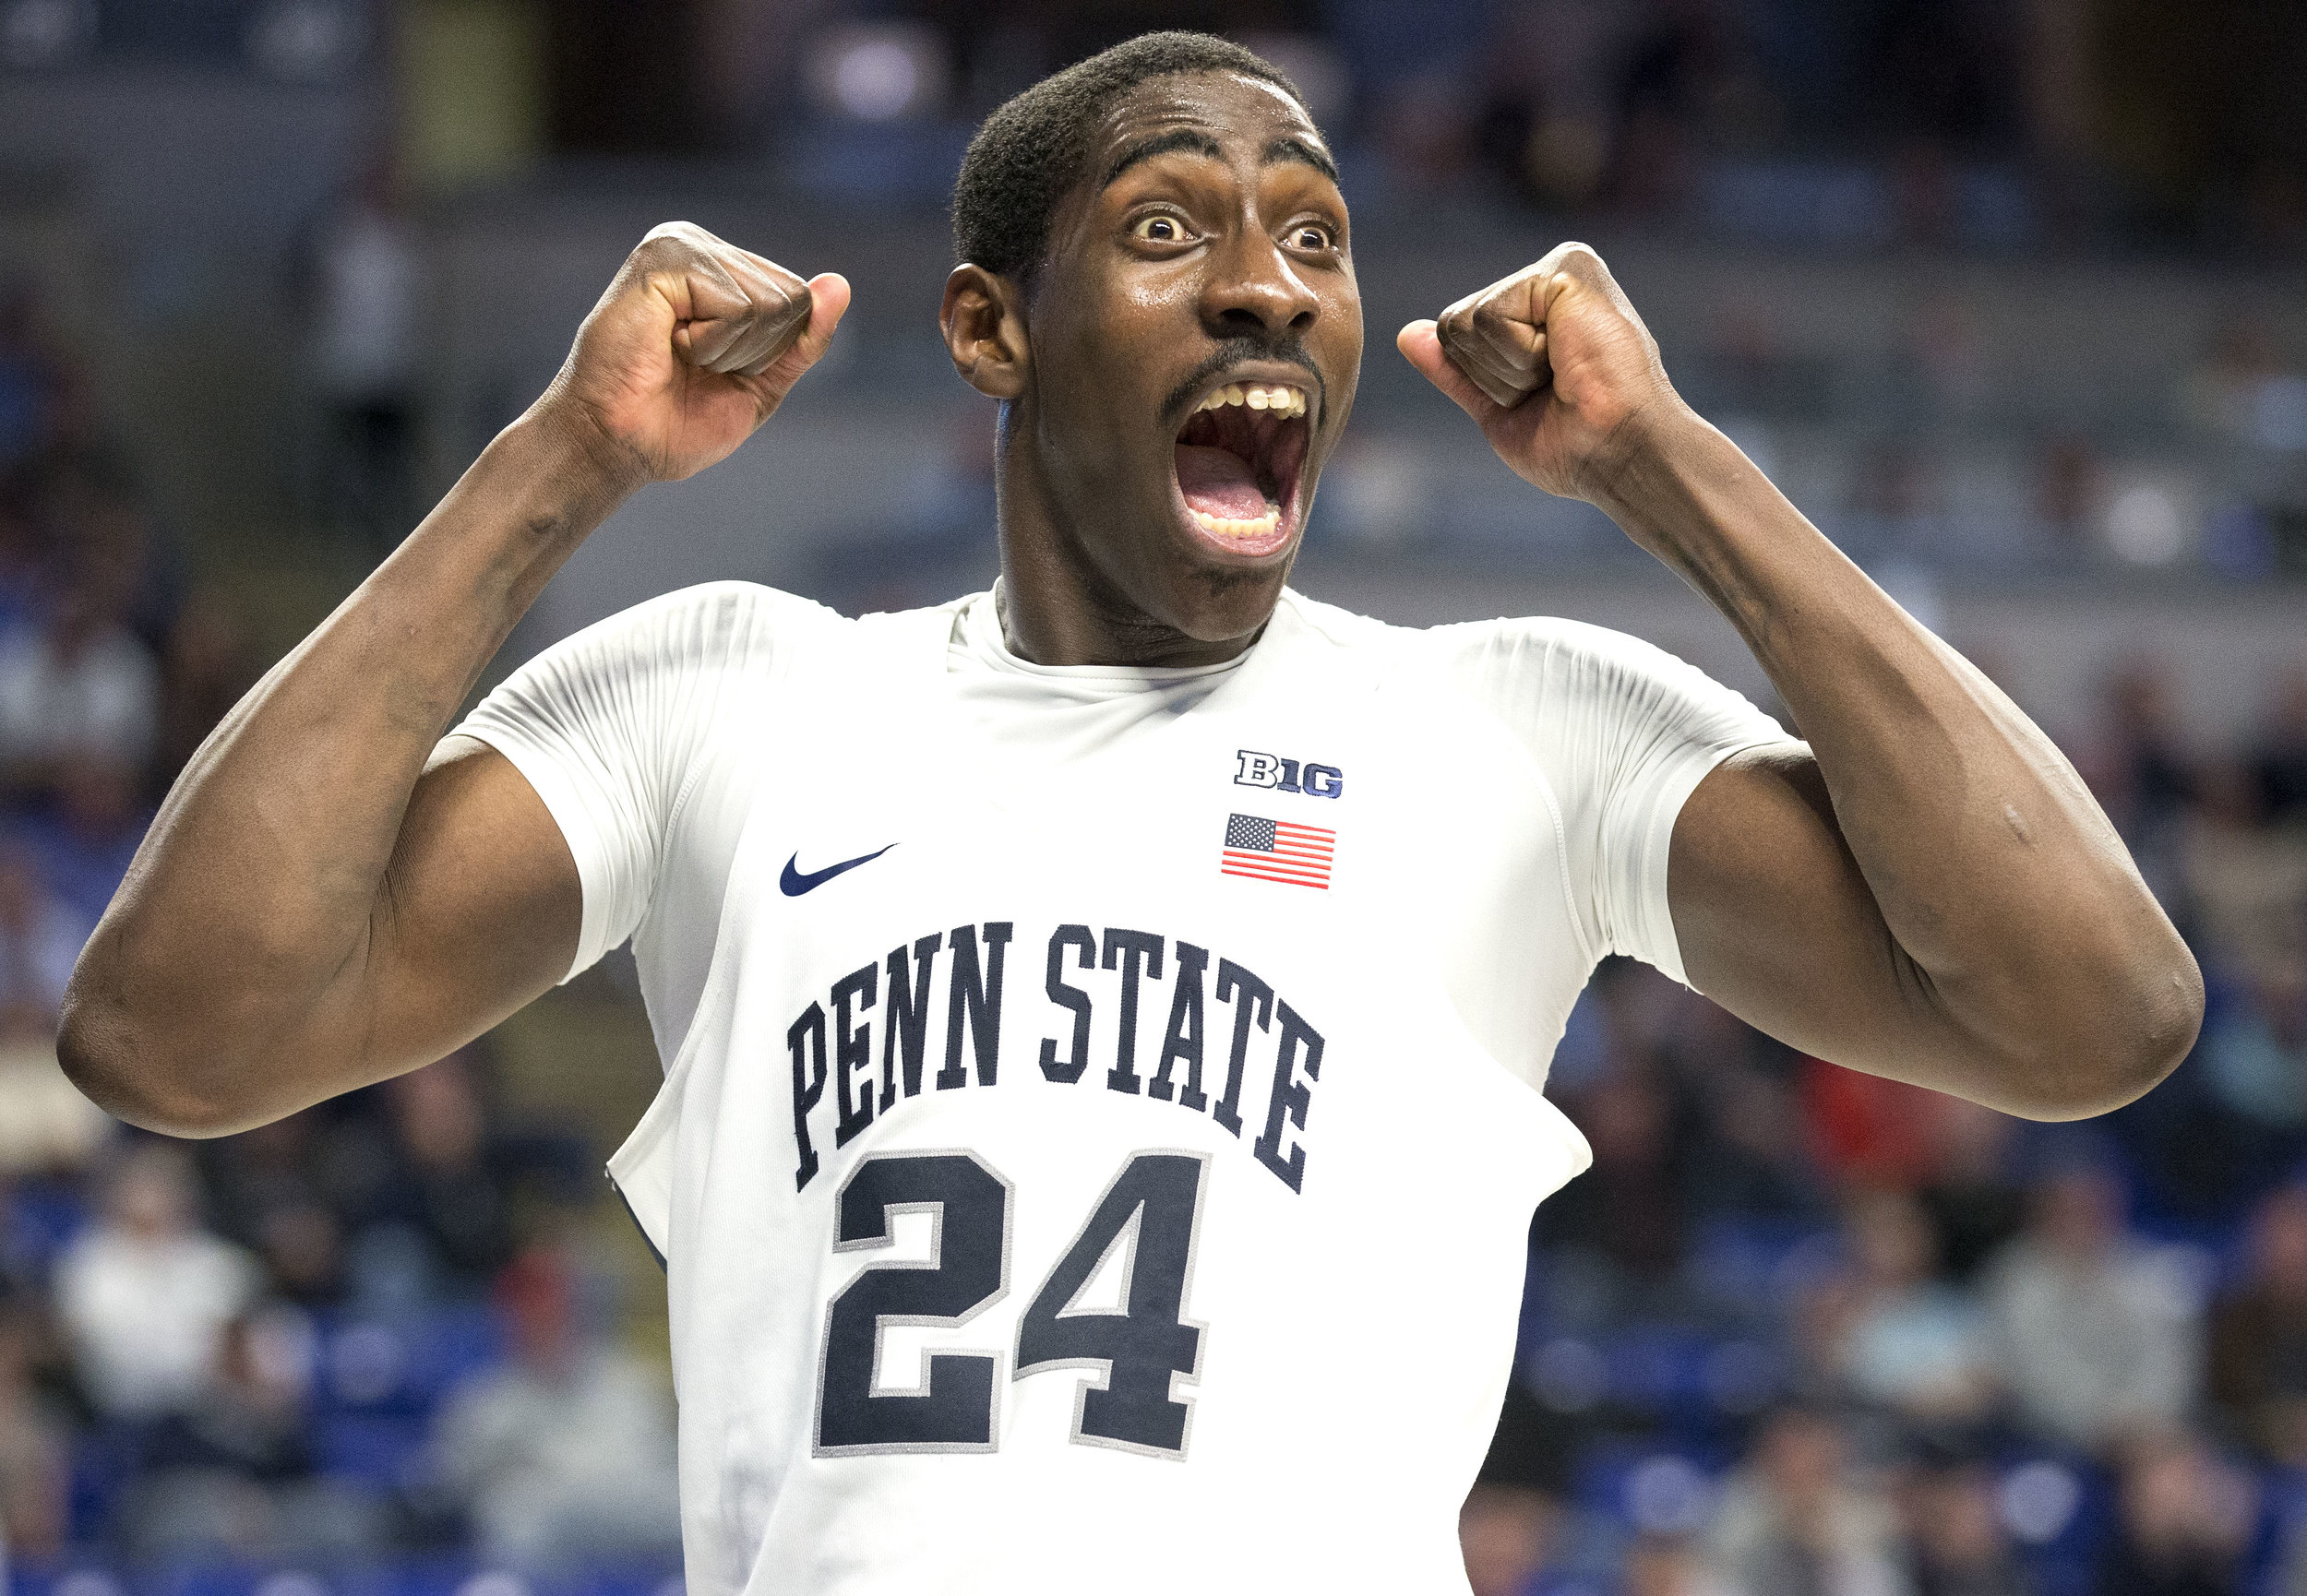 Mike Watkins (24) reacts after a foul call during the men's basketball game against Maryland at the Bryce Jordan Center on Tuesday, Feb. 7, 2017. Penn State defeated Maryland 70-64.